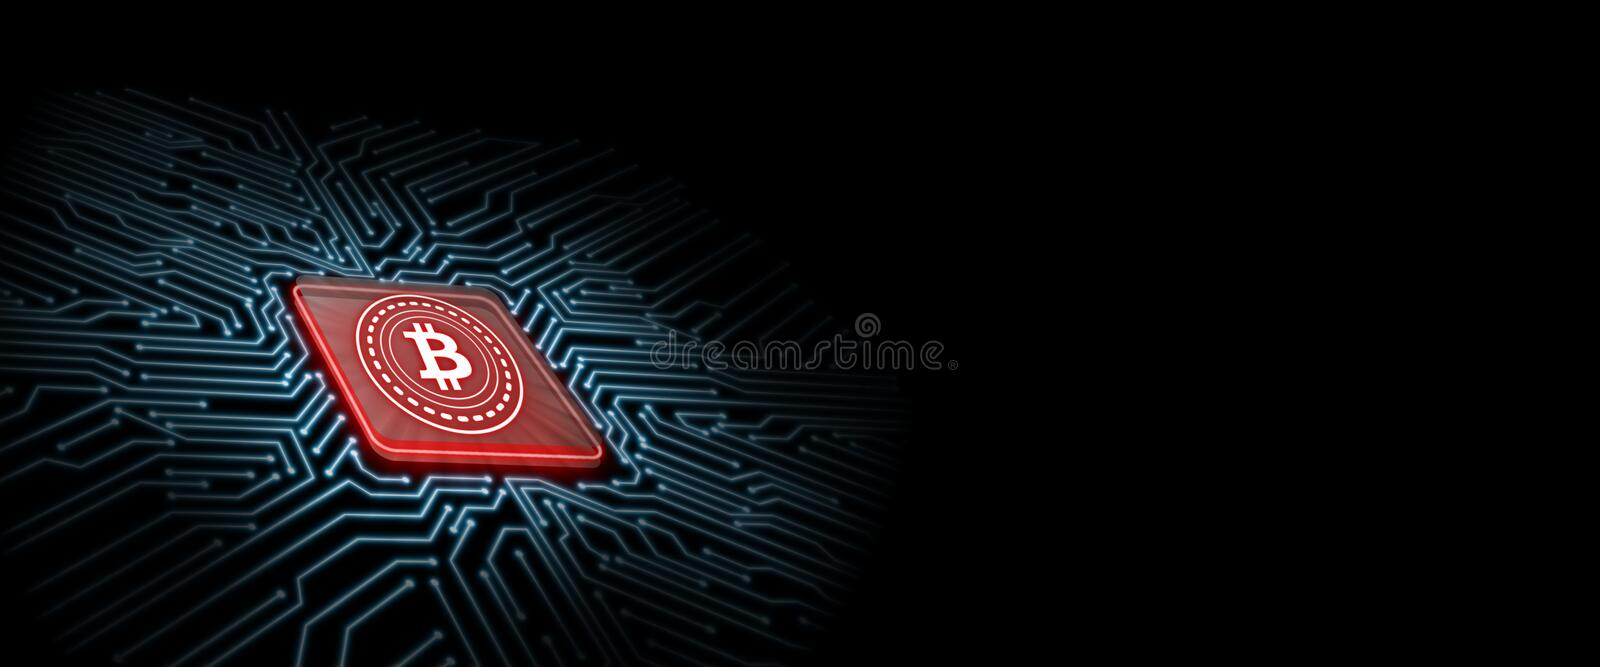 Bitcoin led glow on red computer chip with circuit board background. Concept of microchip technology vector illustration